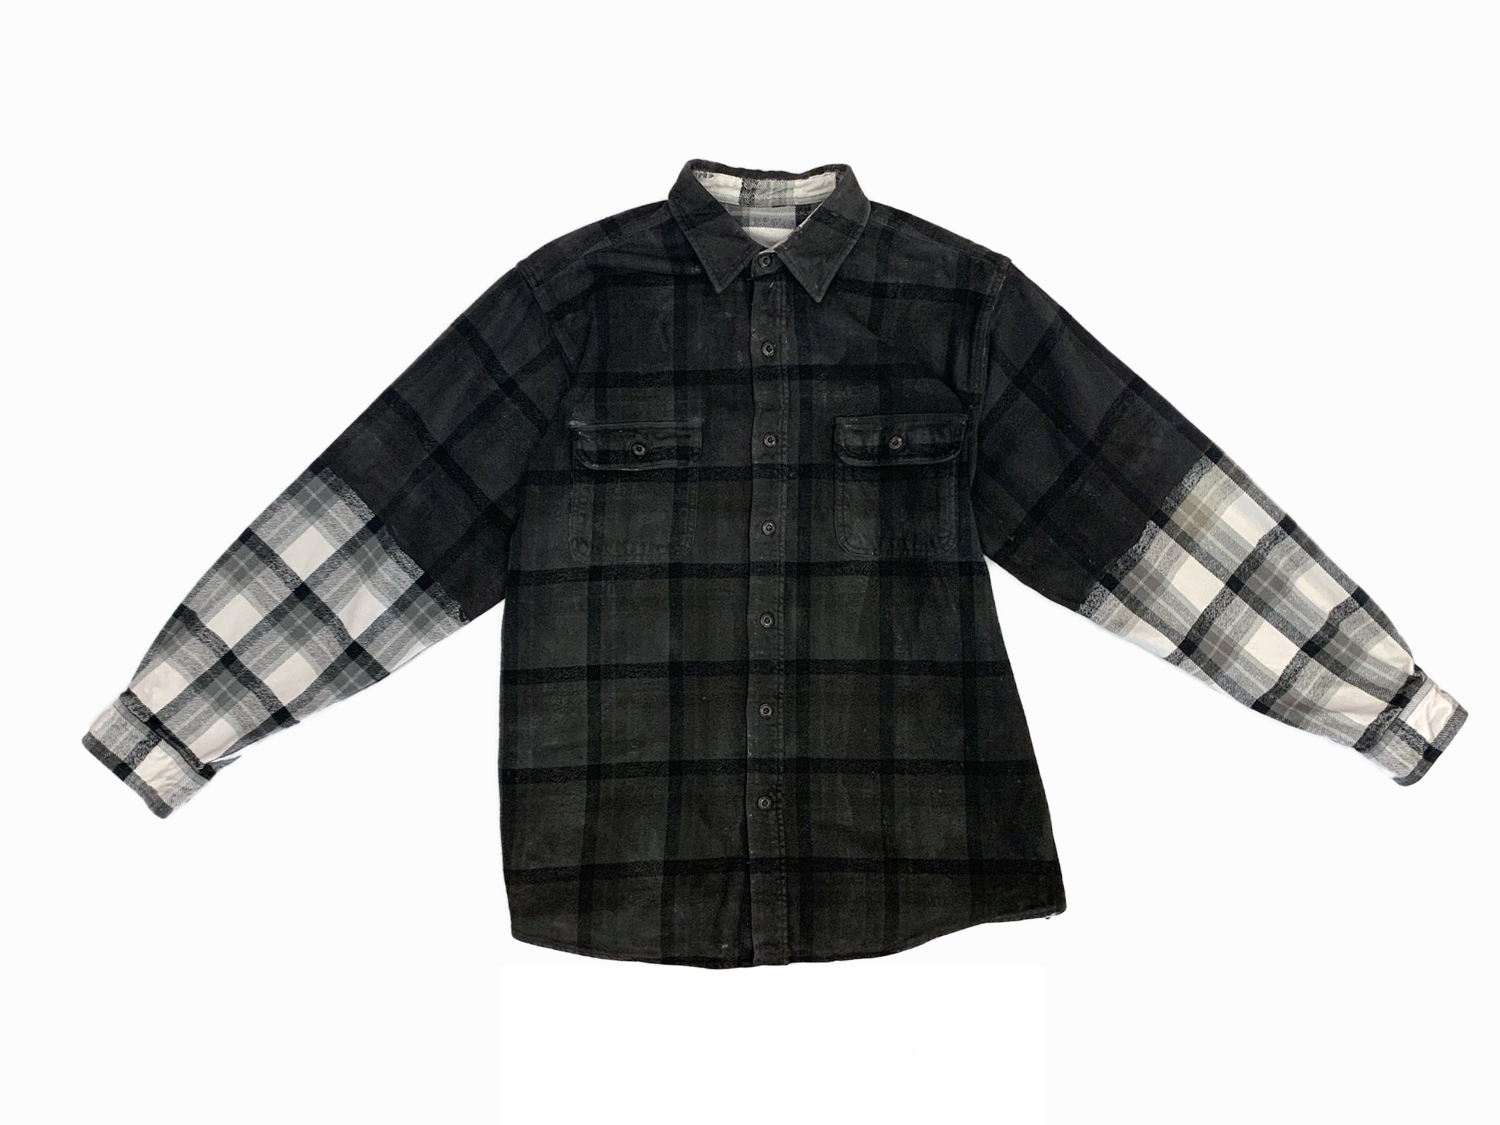 black flannel front product.jpg